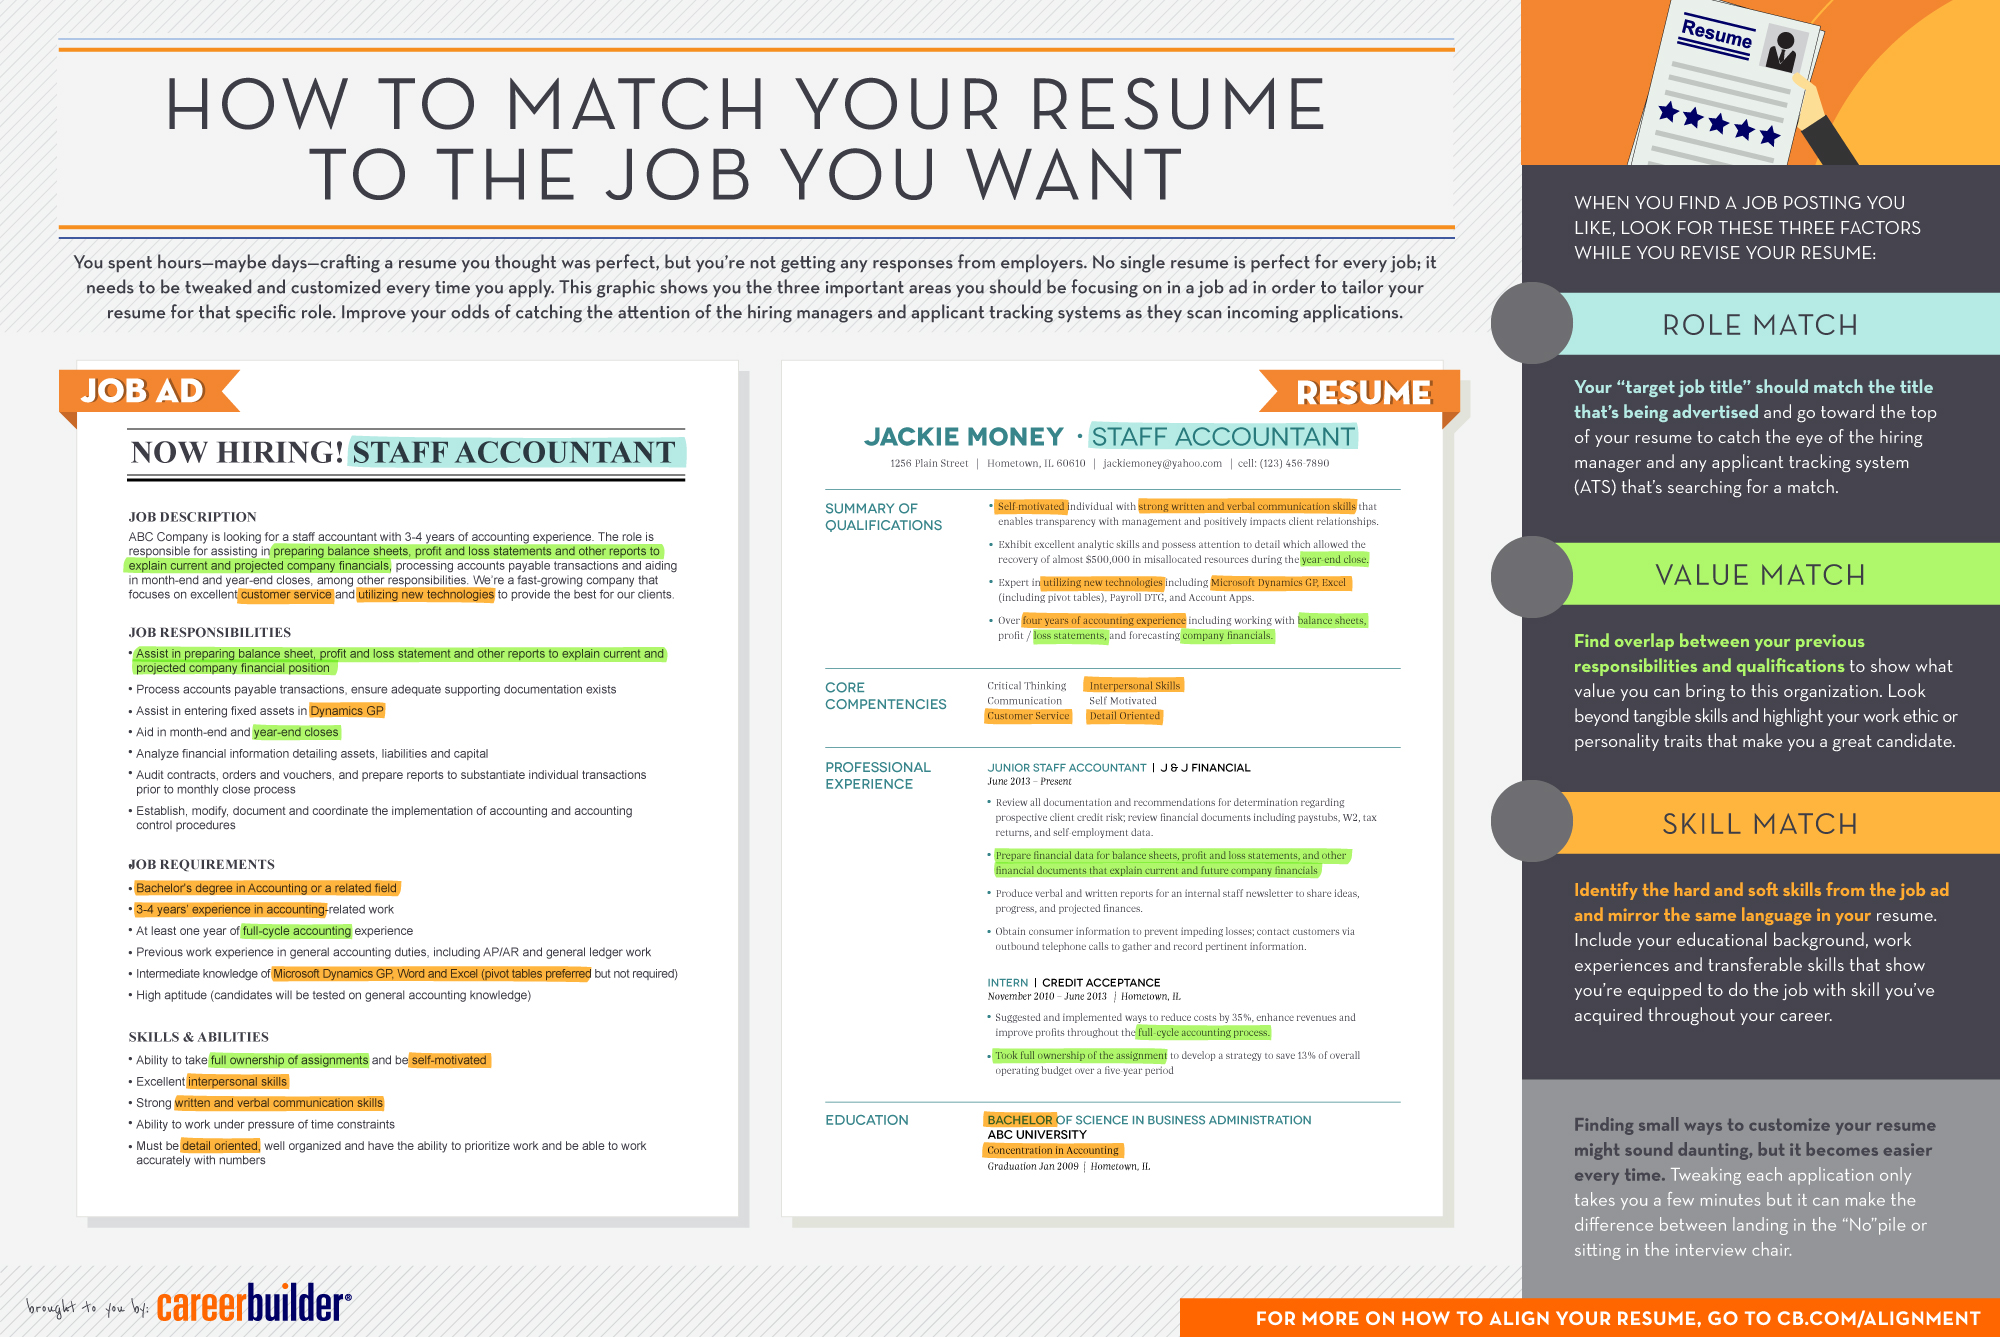 IFO 0044_CustomResume_Snippet  Resume Writing Advice